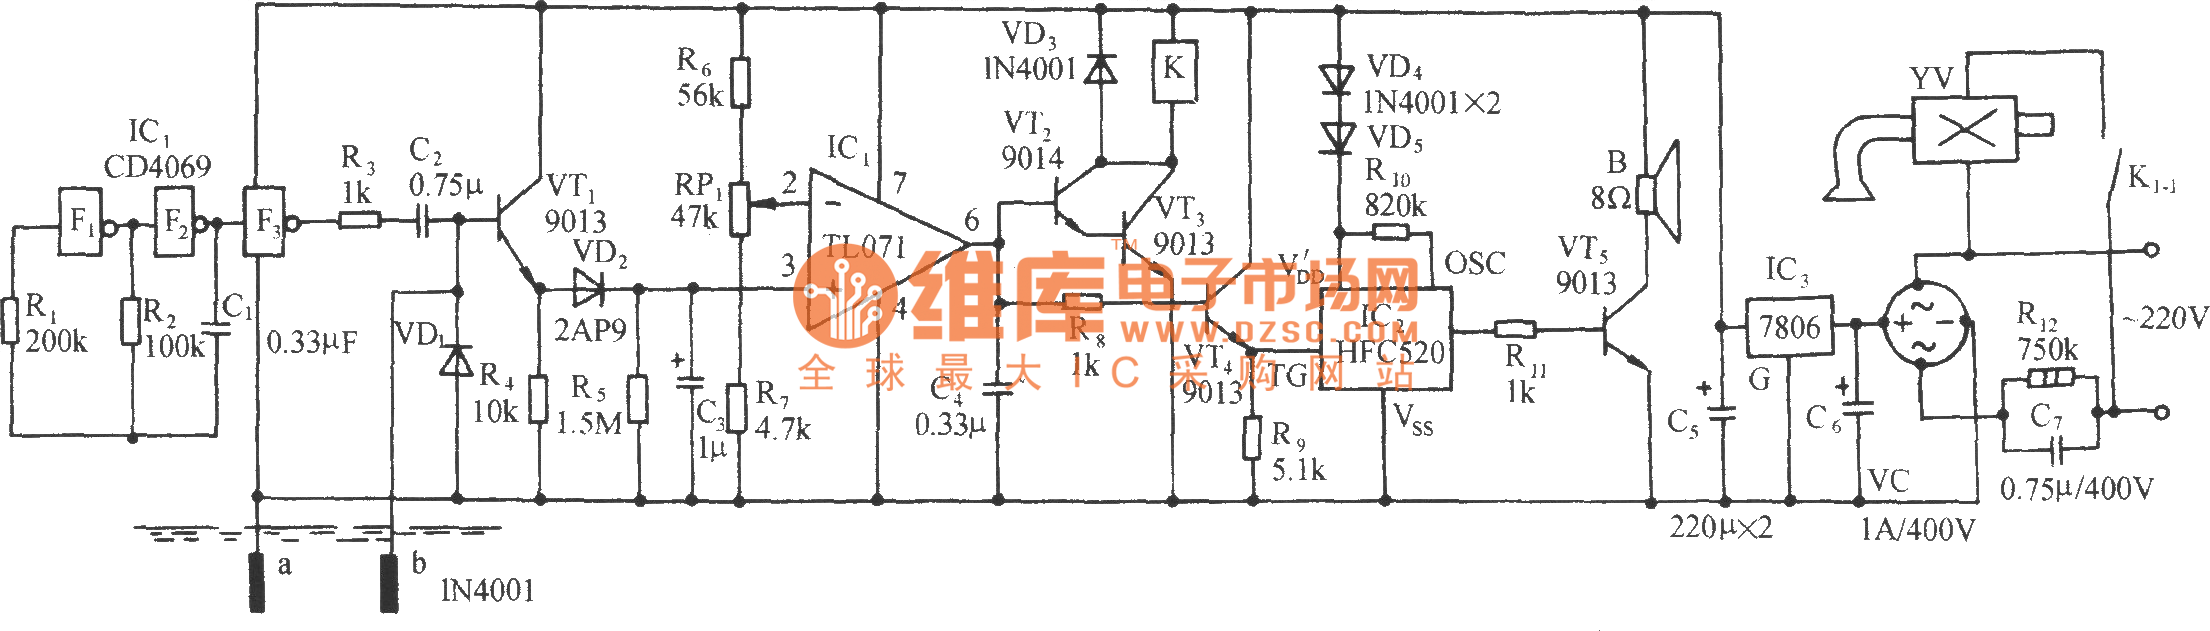 Flower Nursery Water Shortage Automatic Irrigation Control And Voice Alarm Circuit Diagram